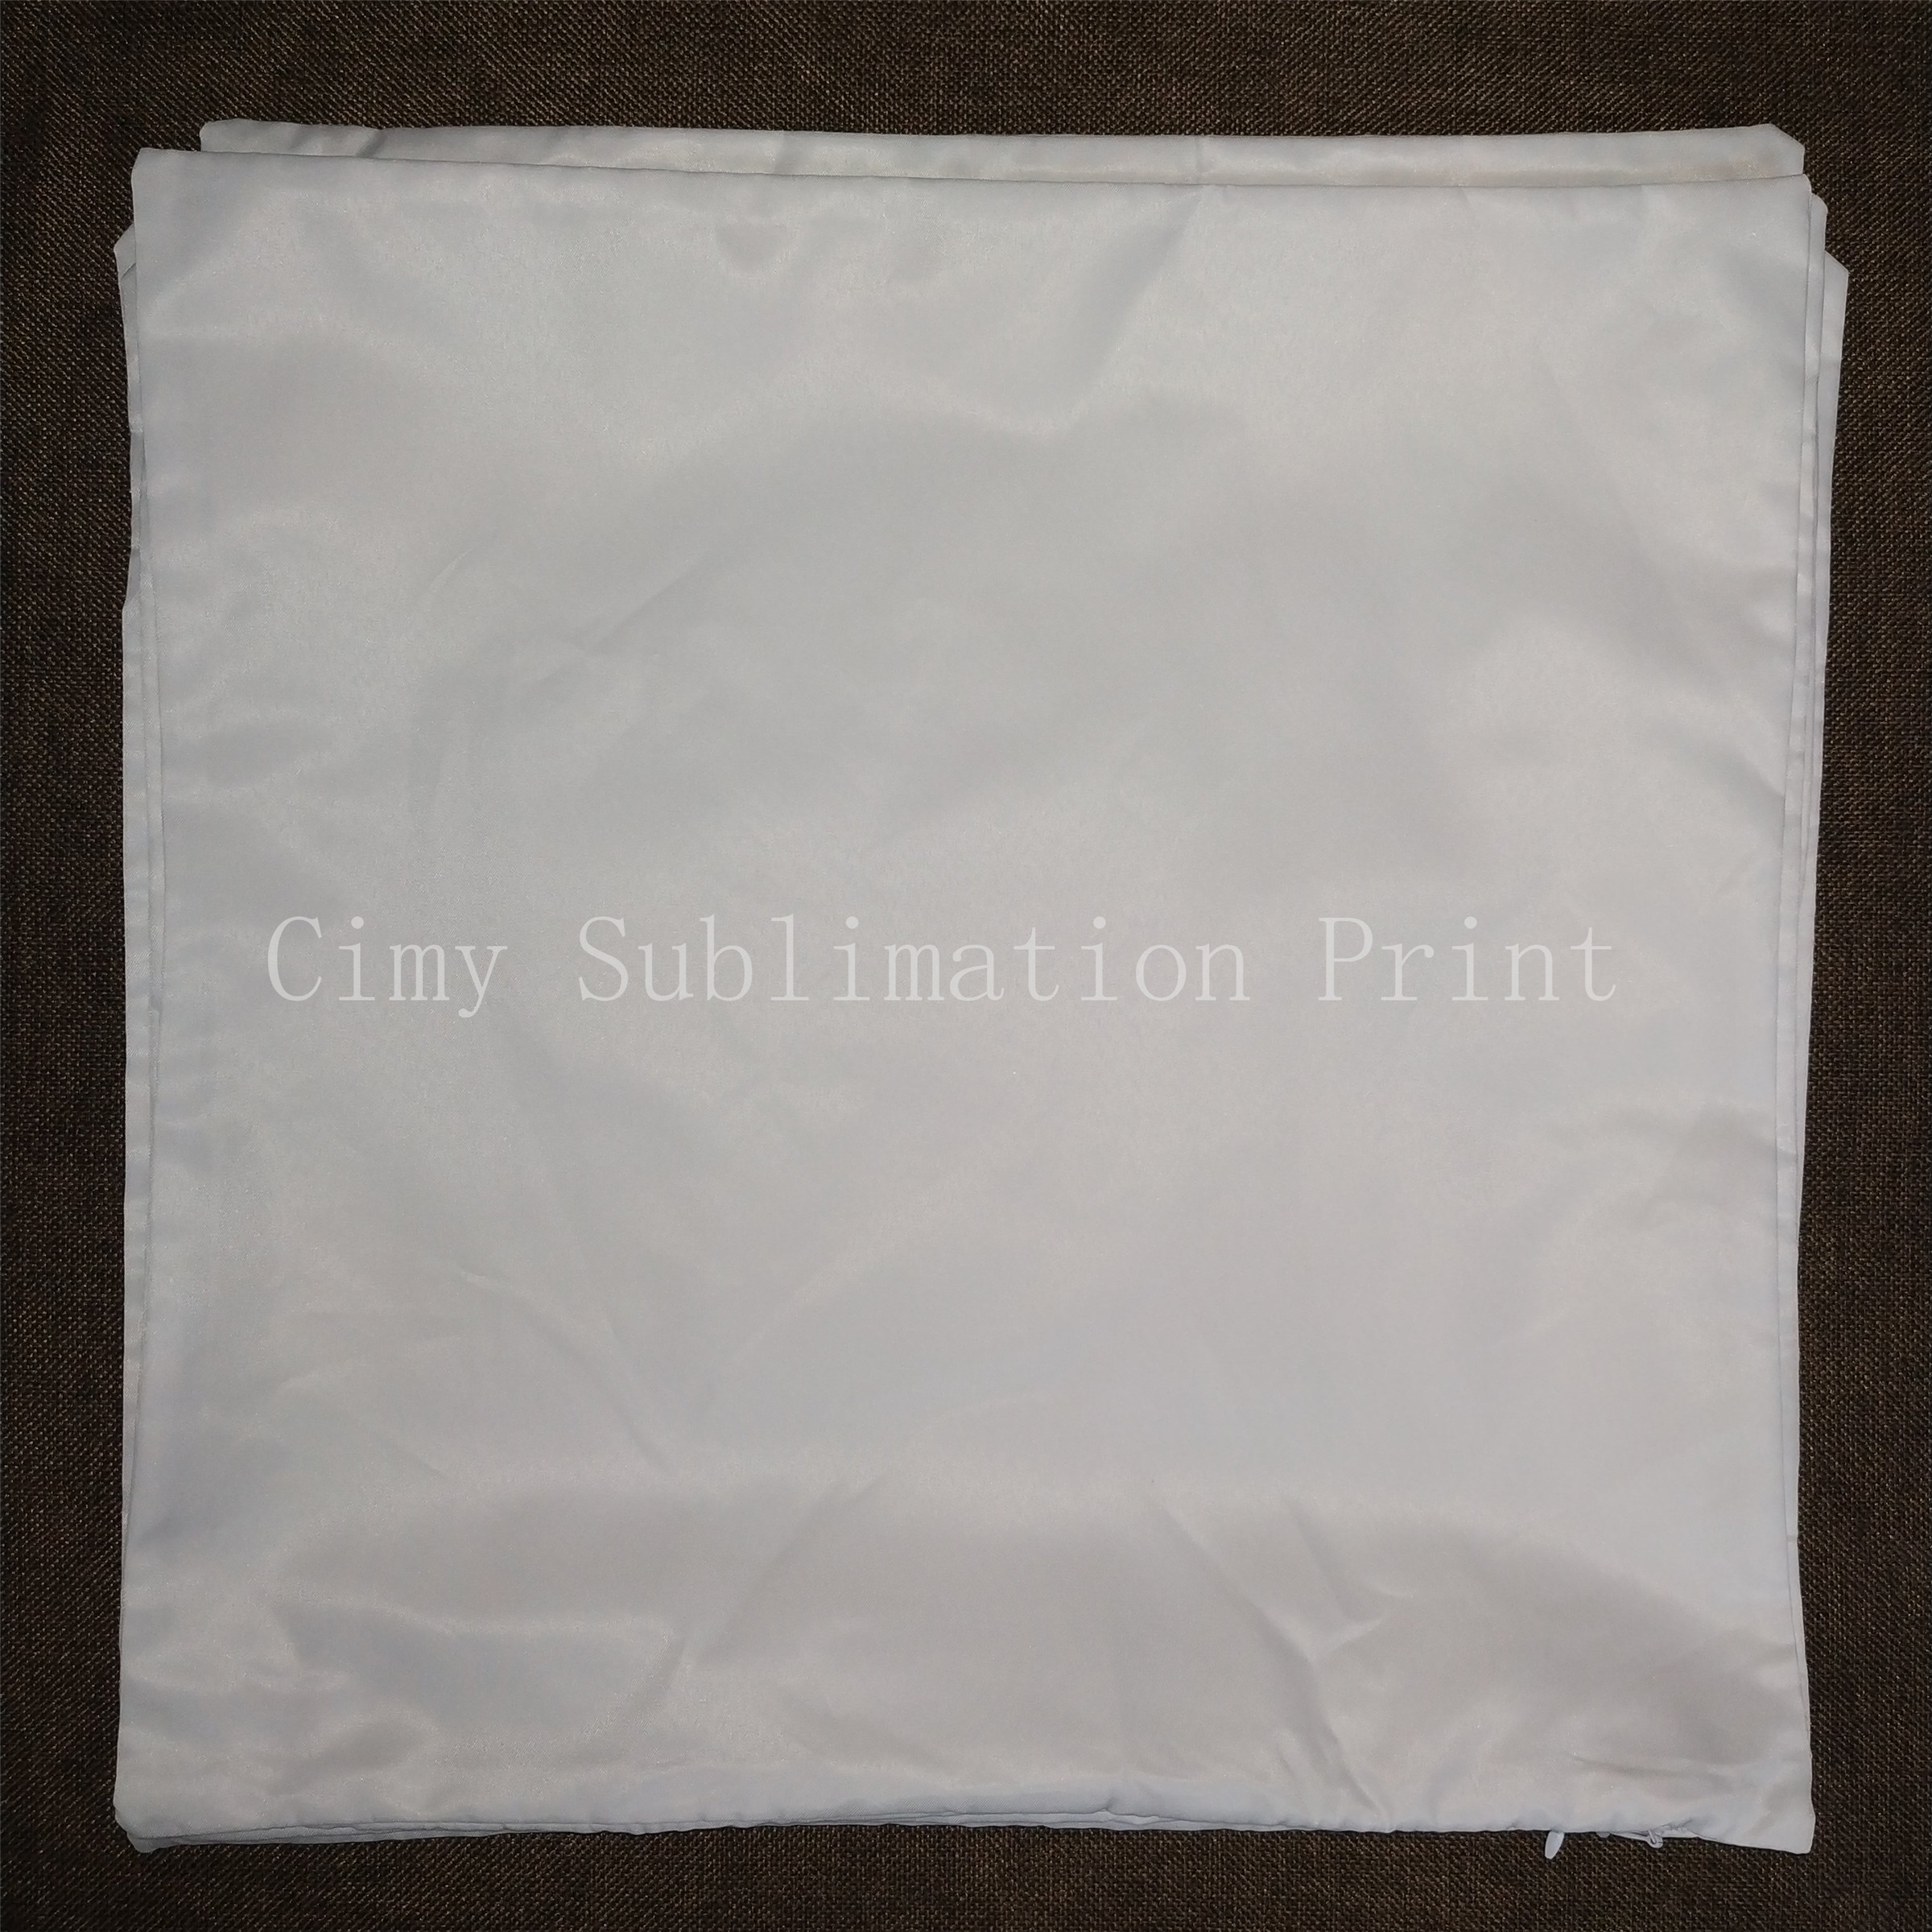 12pcs/lot 40x40cm Blank Sublimation Pillowcase For Sublimation INK Print DIY Gifts Heat Press Printing Transfer